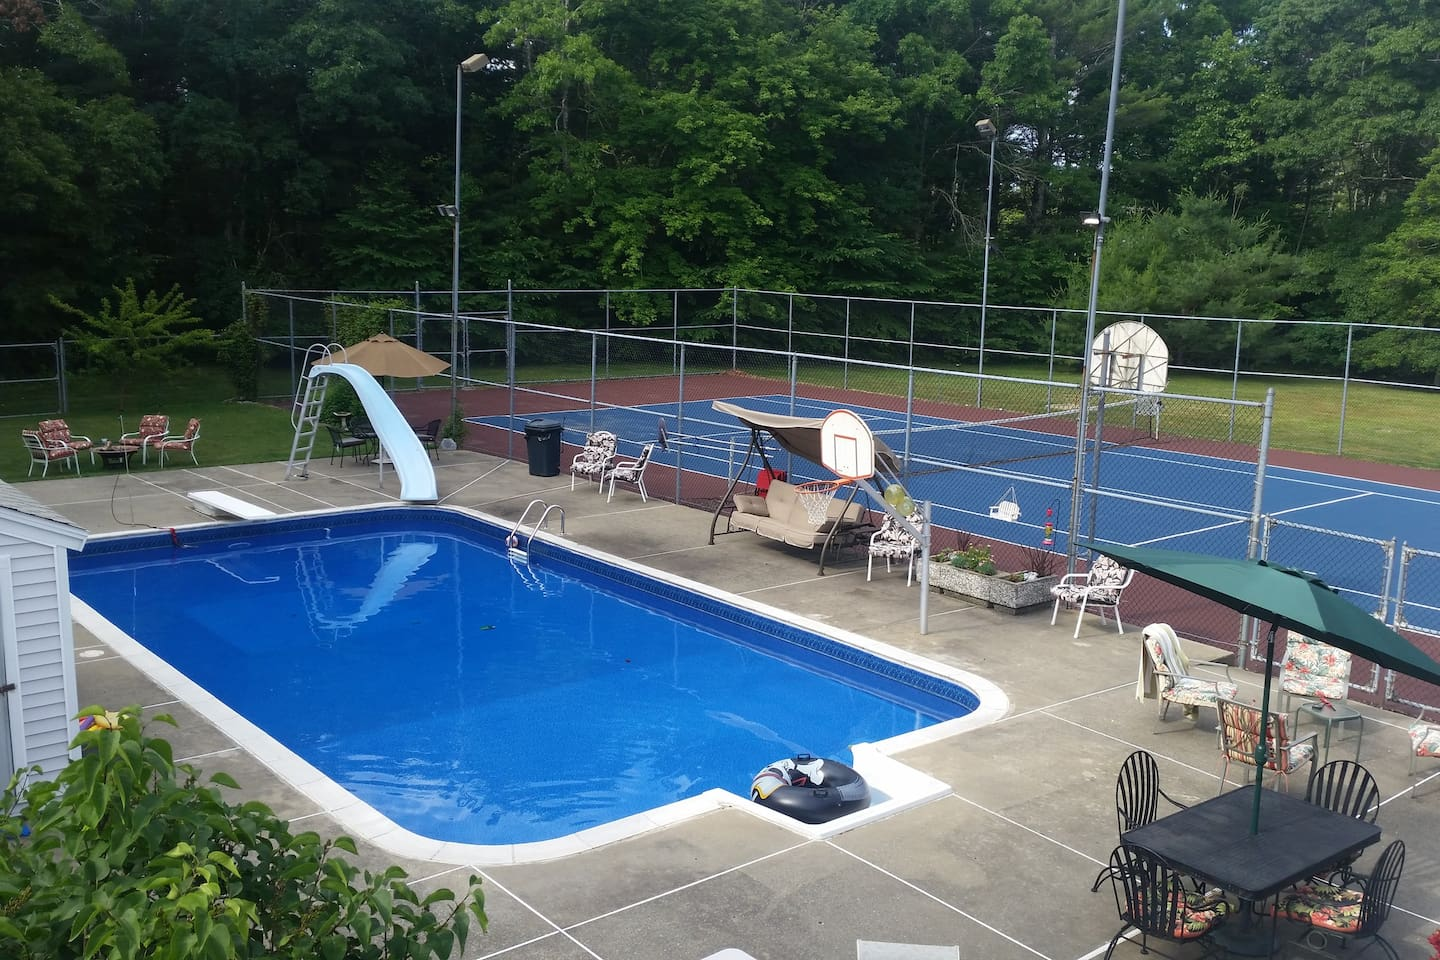 New pool liner and resurfaced tennis/Basketball court.